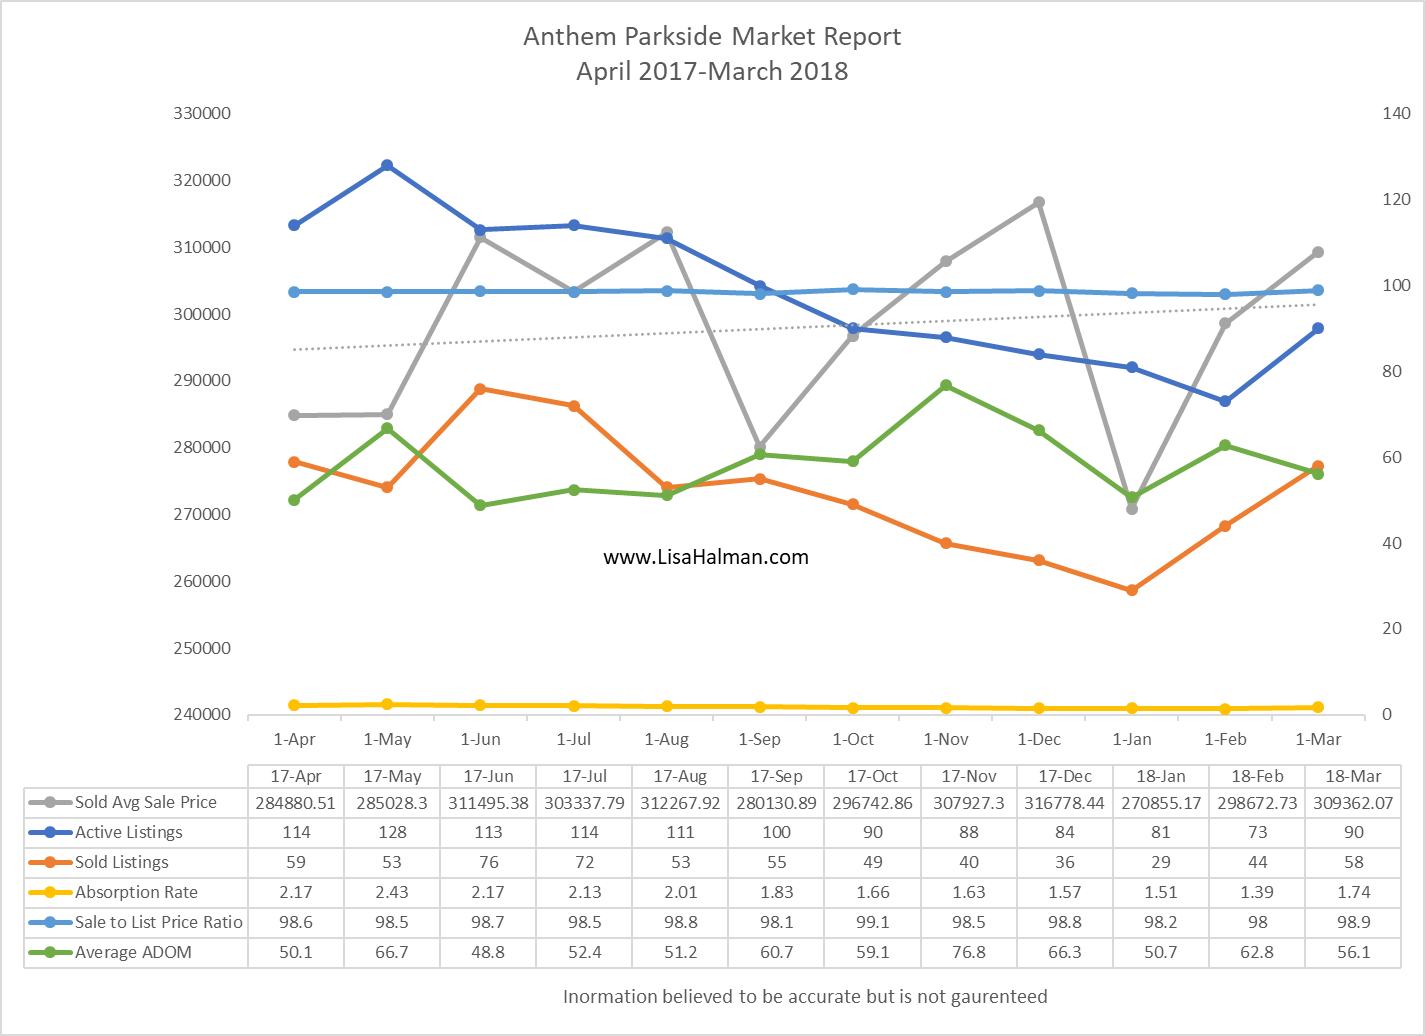 Anthem Parkside Market Update March 2018